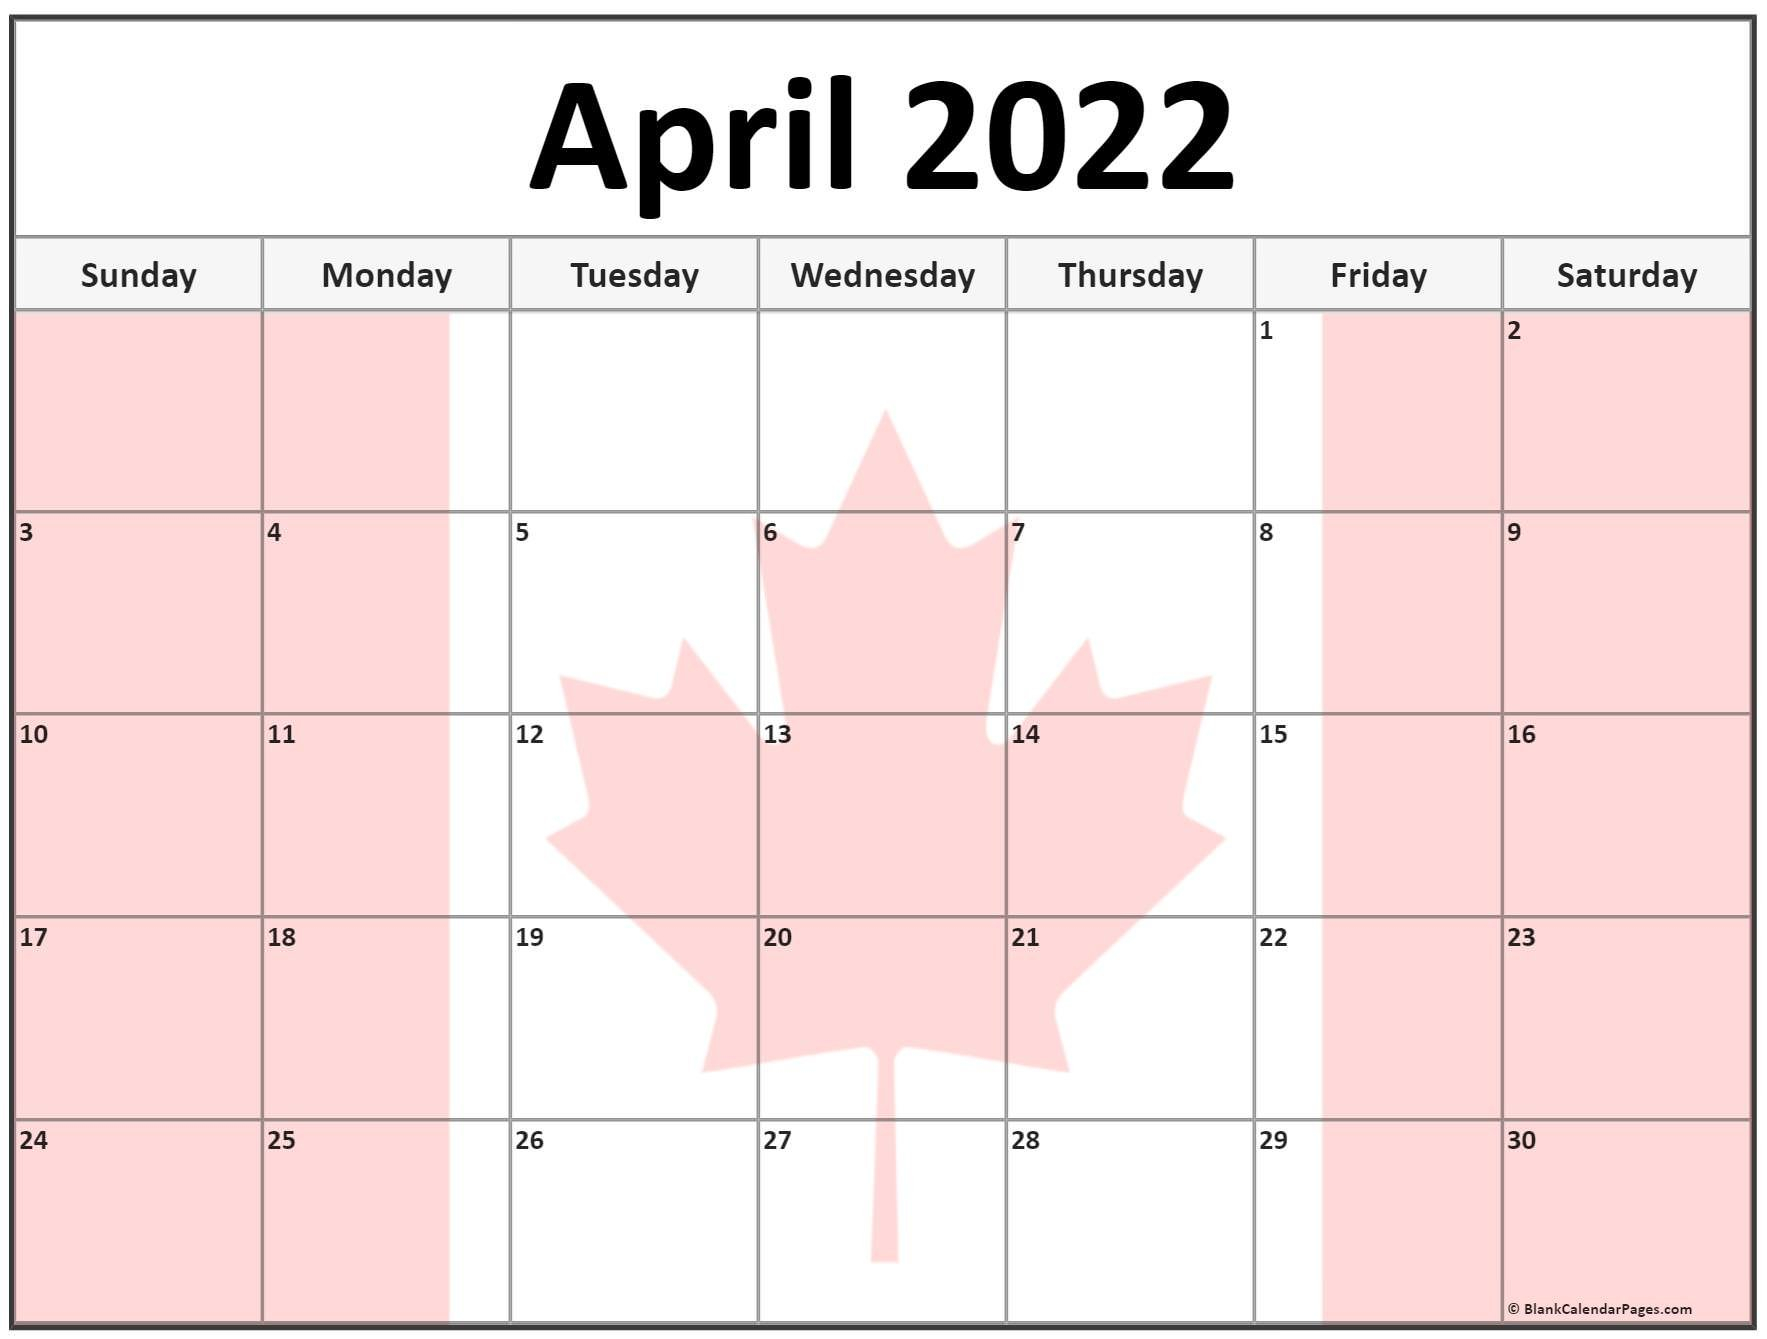 Collection Of April 2022 Photo Calendars With Image Filters. in April May 2022 Printable Calendar Image